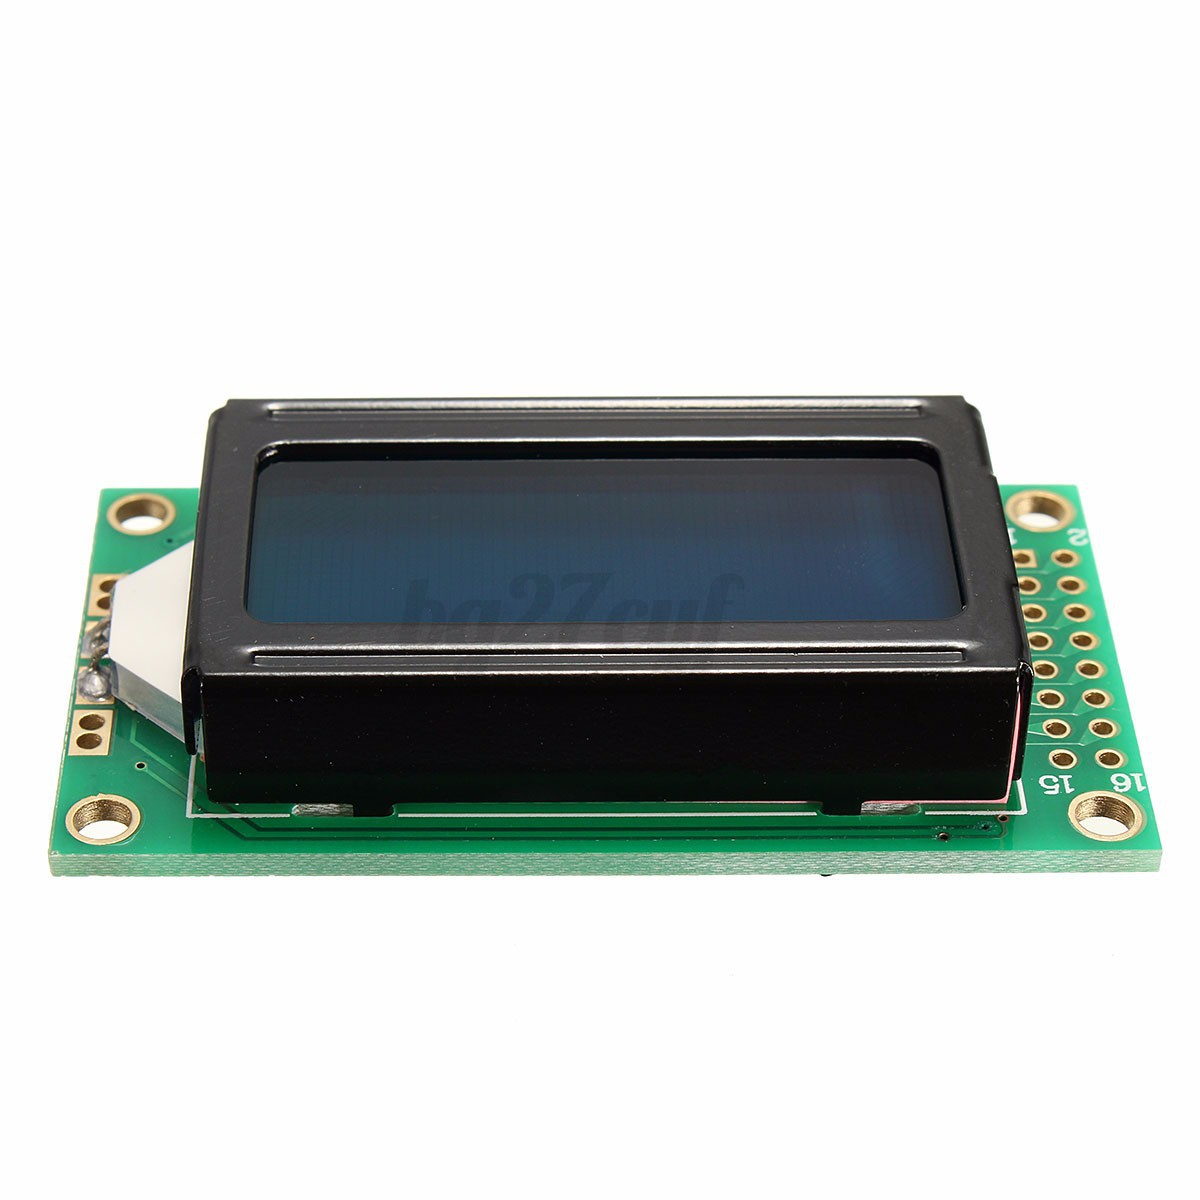 0802 8 2 character lcd module display lcm w led light for. Black Bedroom Furniture Sets. Home Design Ideas